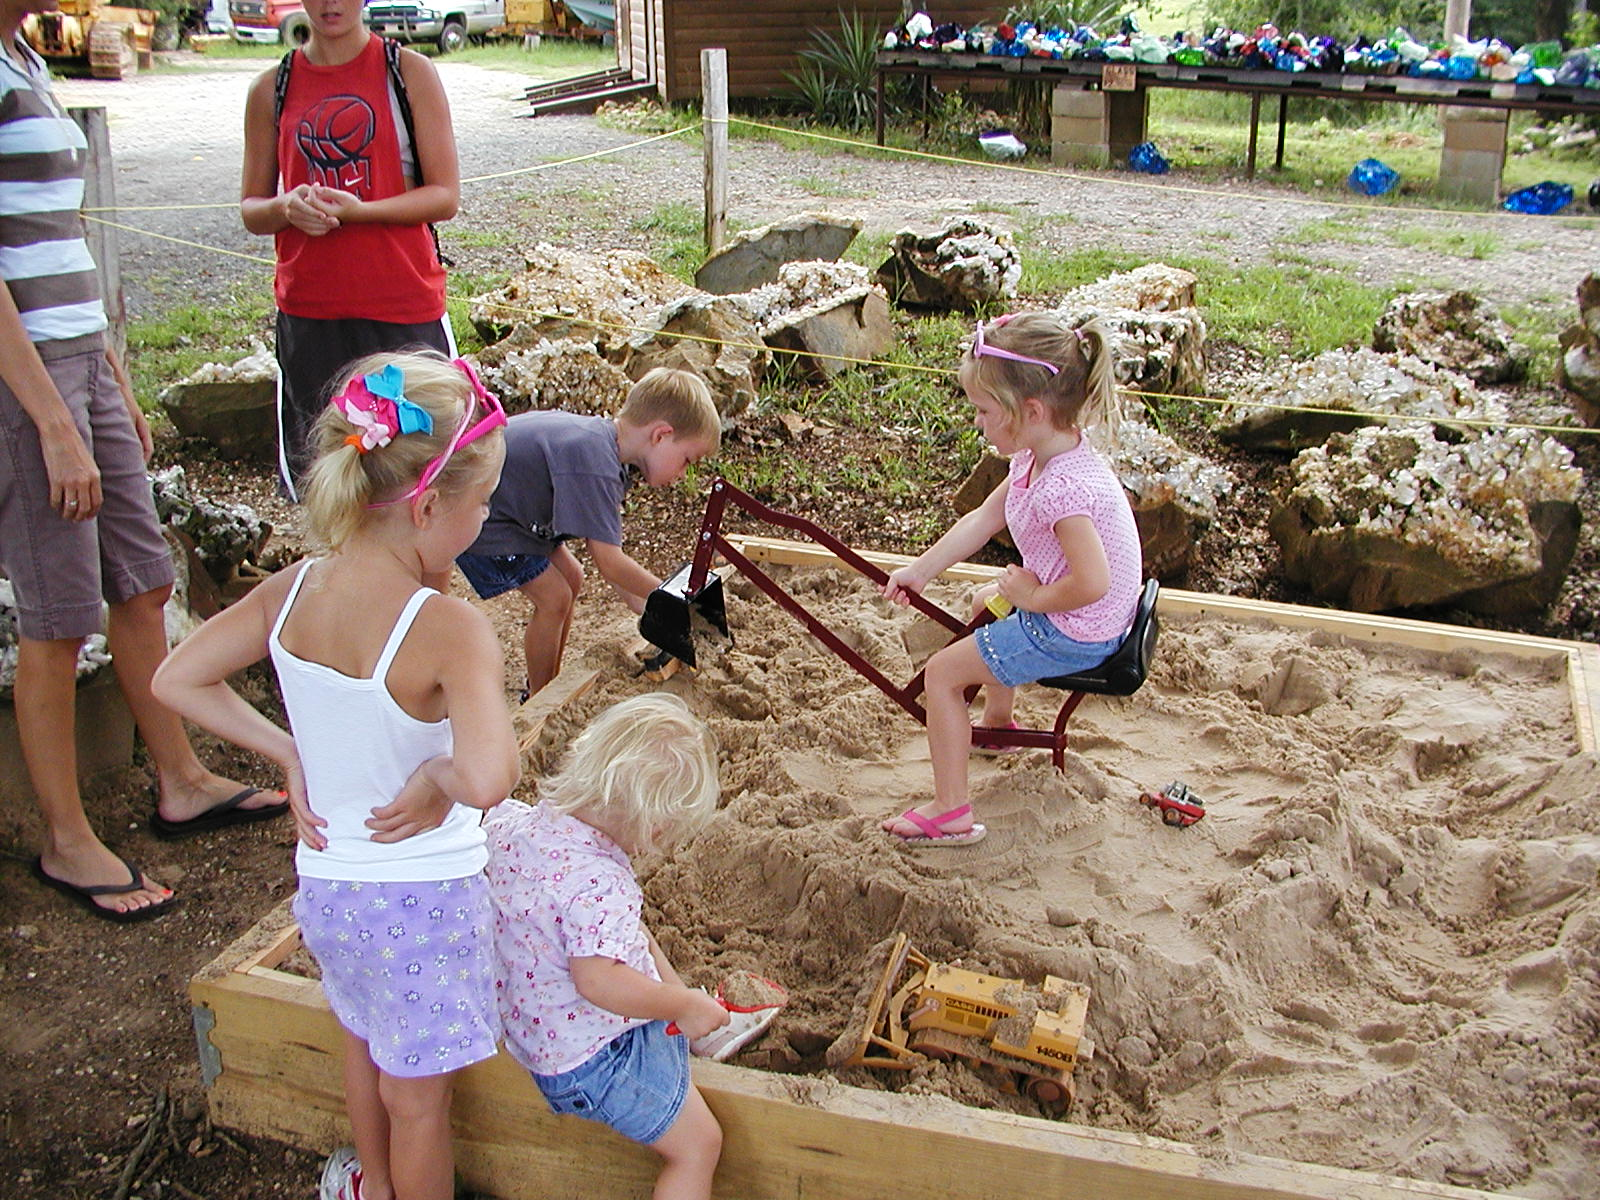 KIDS ENJOYING OUR SANDBOX